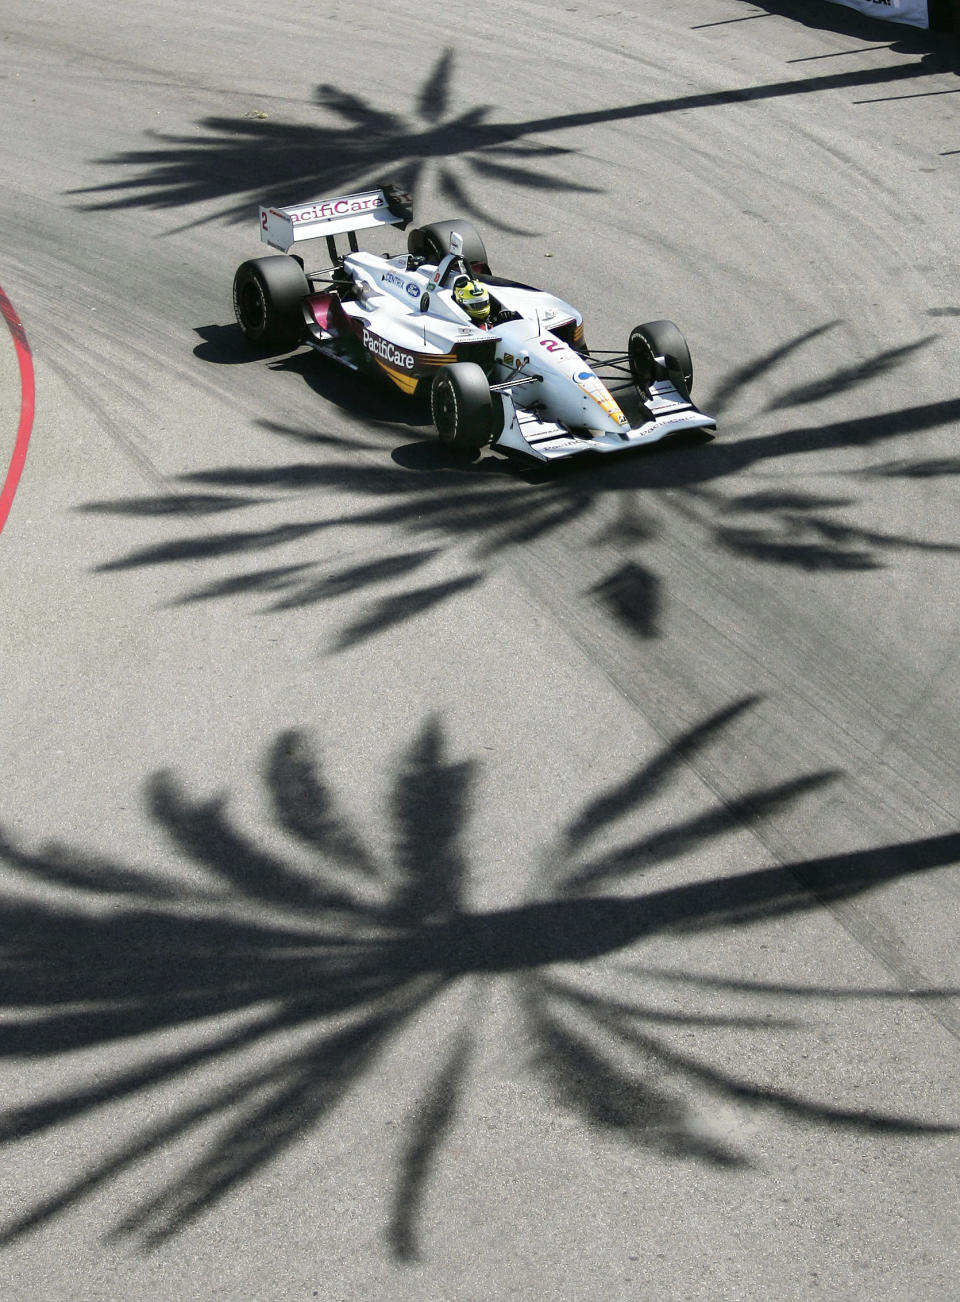 FILE - Bruno Junqueira of Brazil goes through turn three during the first day qualifying for Champ Car's Toyota Grand Prix of Long Beach, in Long Beach, Calif., in this Friday, April 8, 2005, file photo. The Grand Prix of Long Beach opens 17 months after the pandemic ended the crown jewel's streak as one of the longest continuously-running street events in racing. (AP Photo/Mark J. Terrill, File)